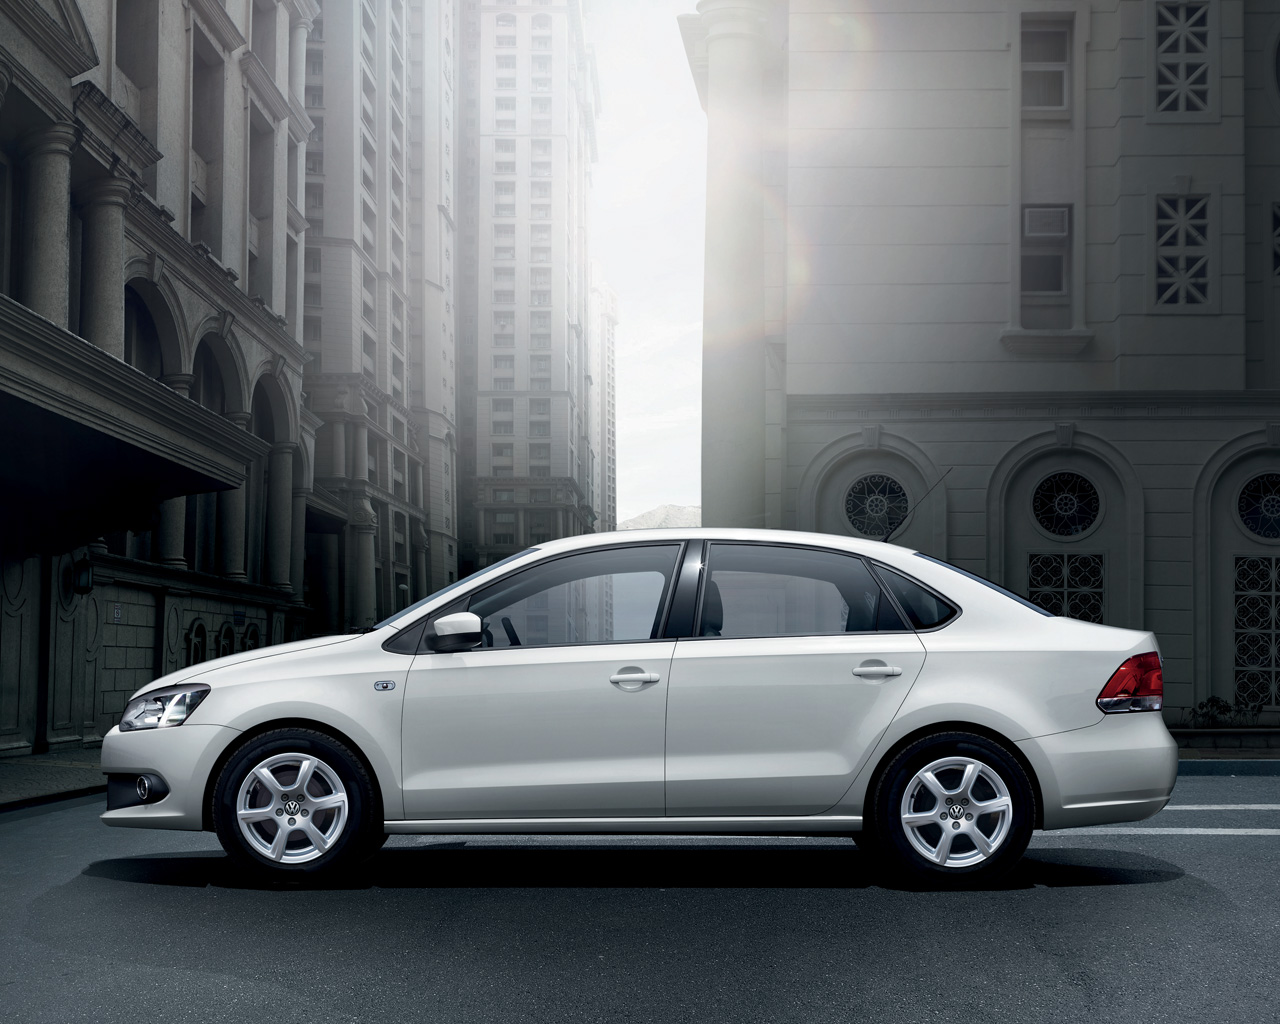 Volkswagen Vento Specs Photos 2010 2011 2012 2013 2014 2015 2016 2017 2018 2019 2020 2021 Autoevolution